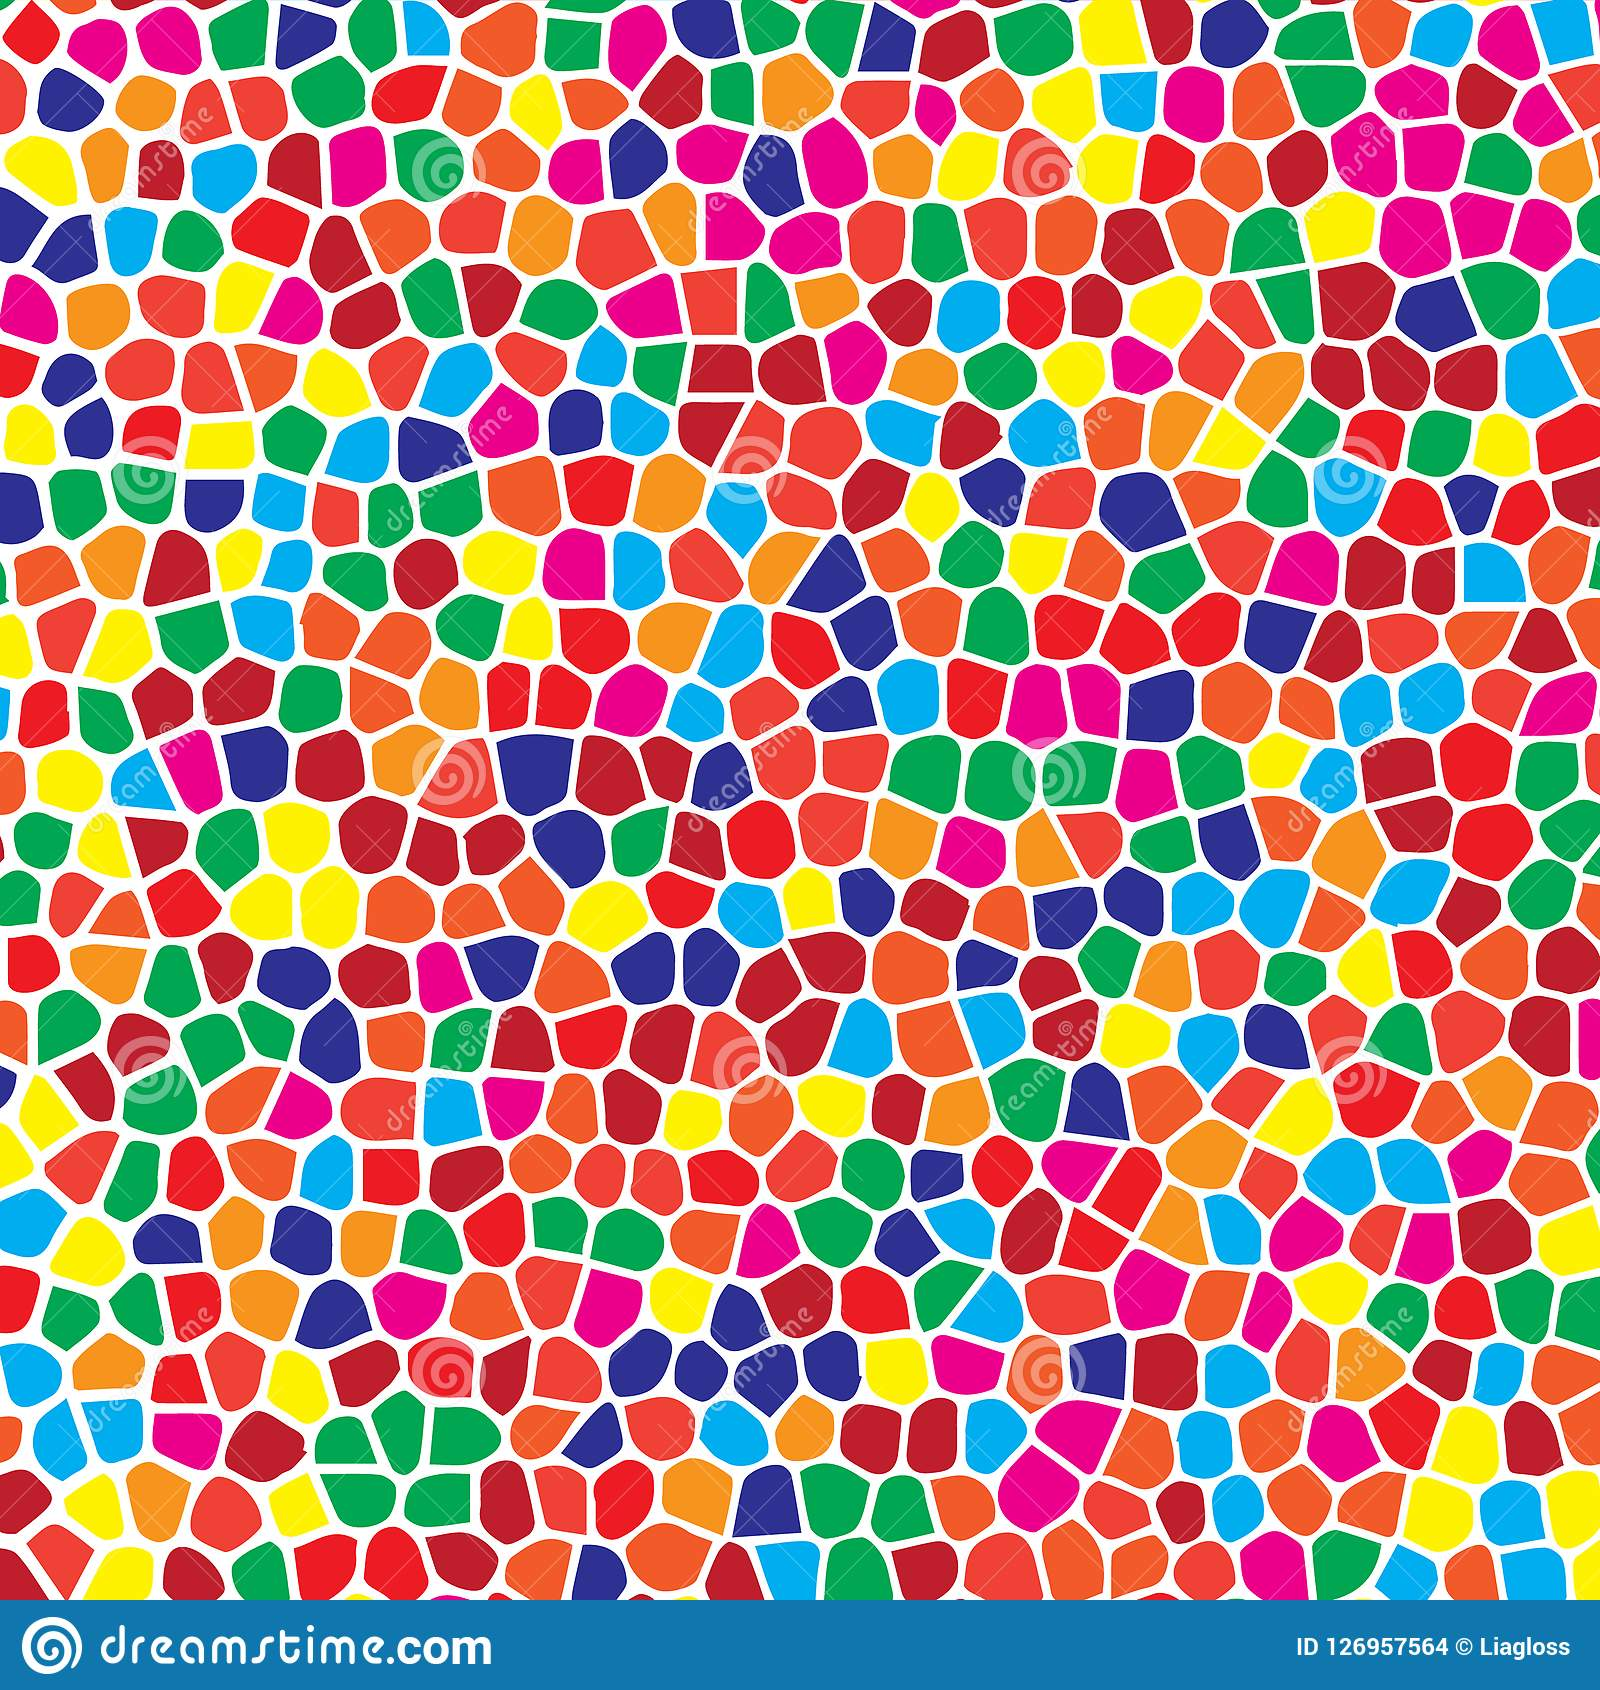 Free Colorful Geometric Wallpaper: Abstract Geometric Colorful Mosaic Seamless Pattern For